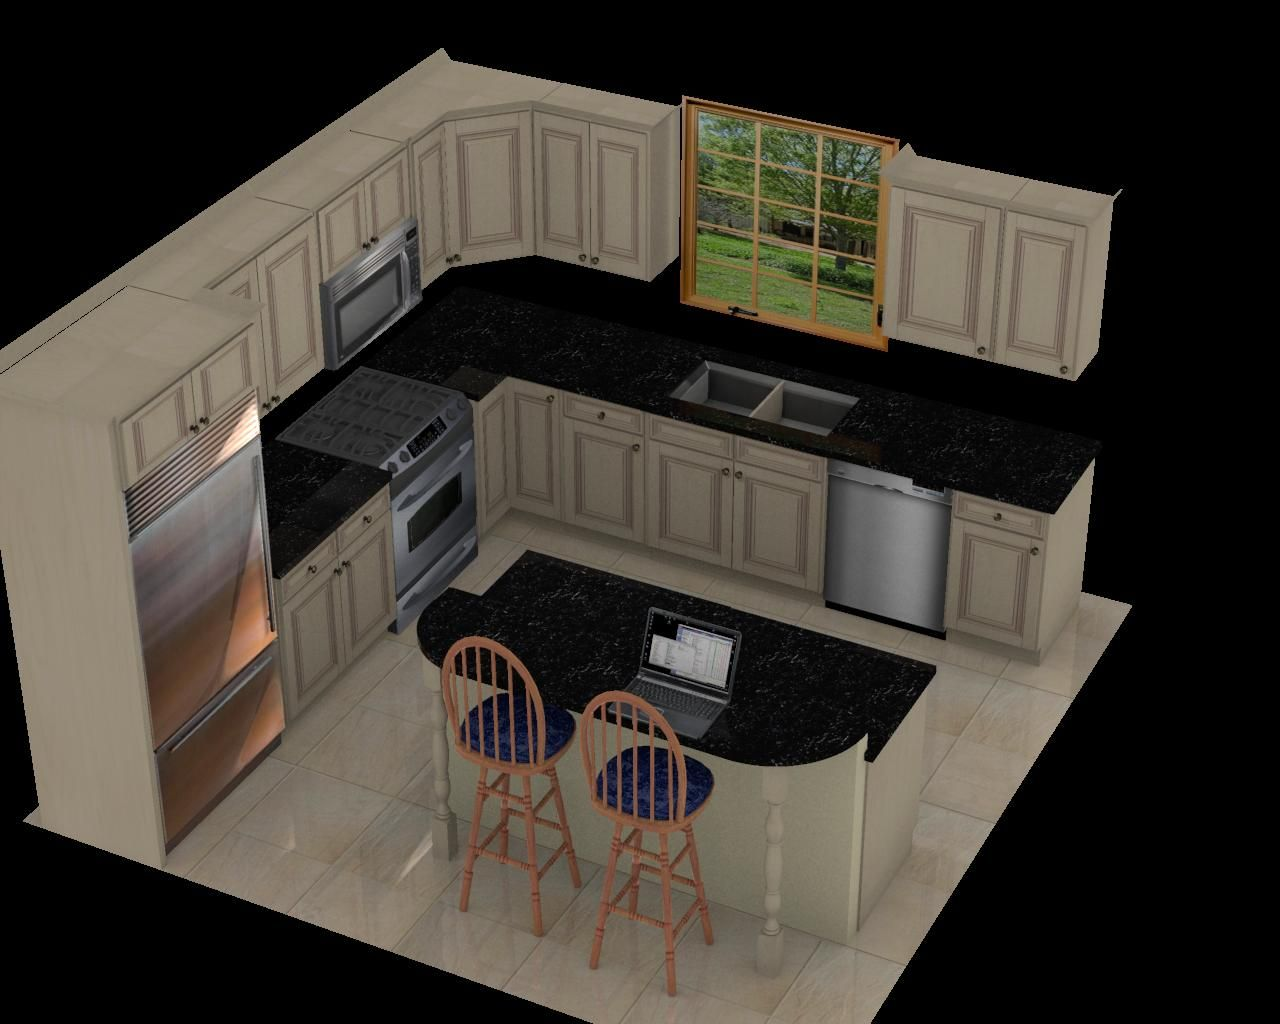 Best Luxury 12X12 Kitchen Layout With Island 51 For With 12X12 400 x 300